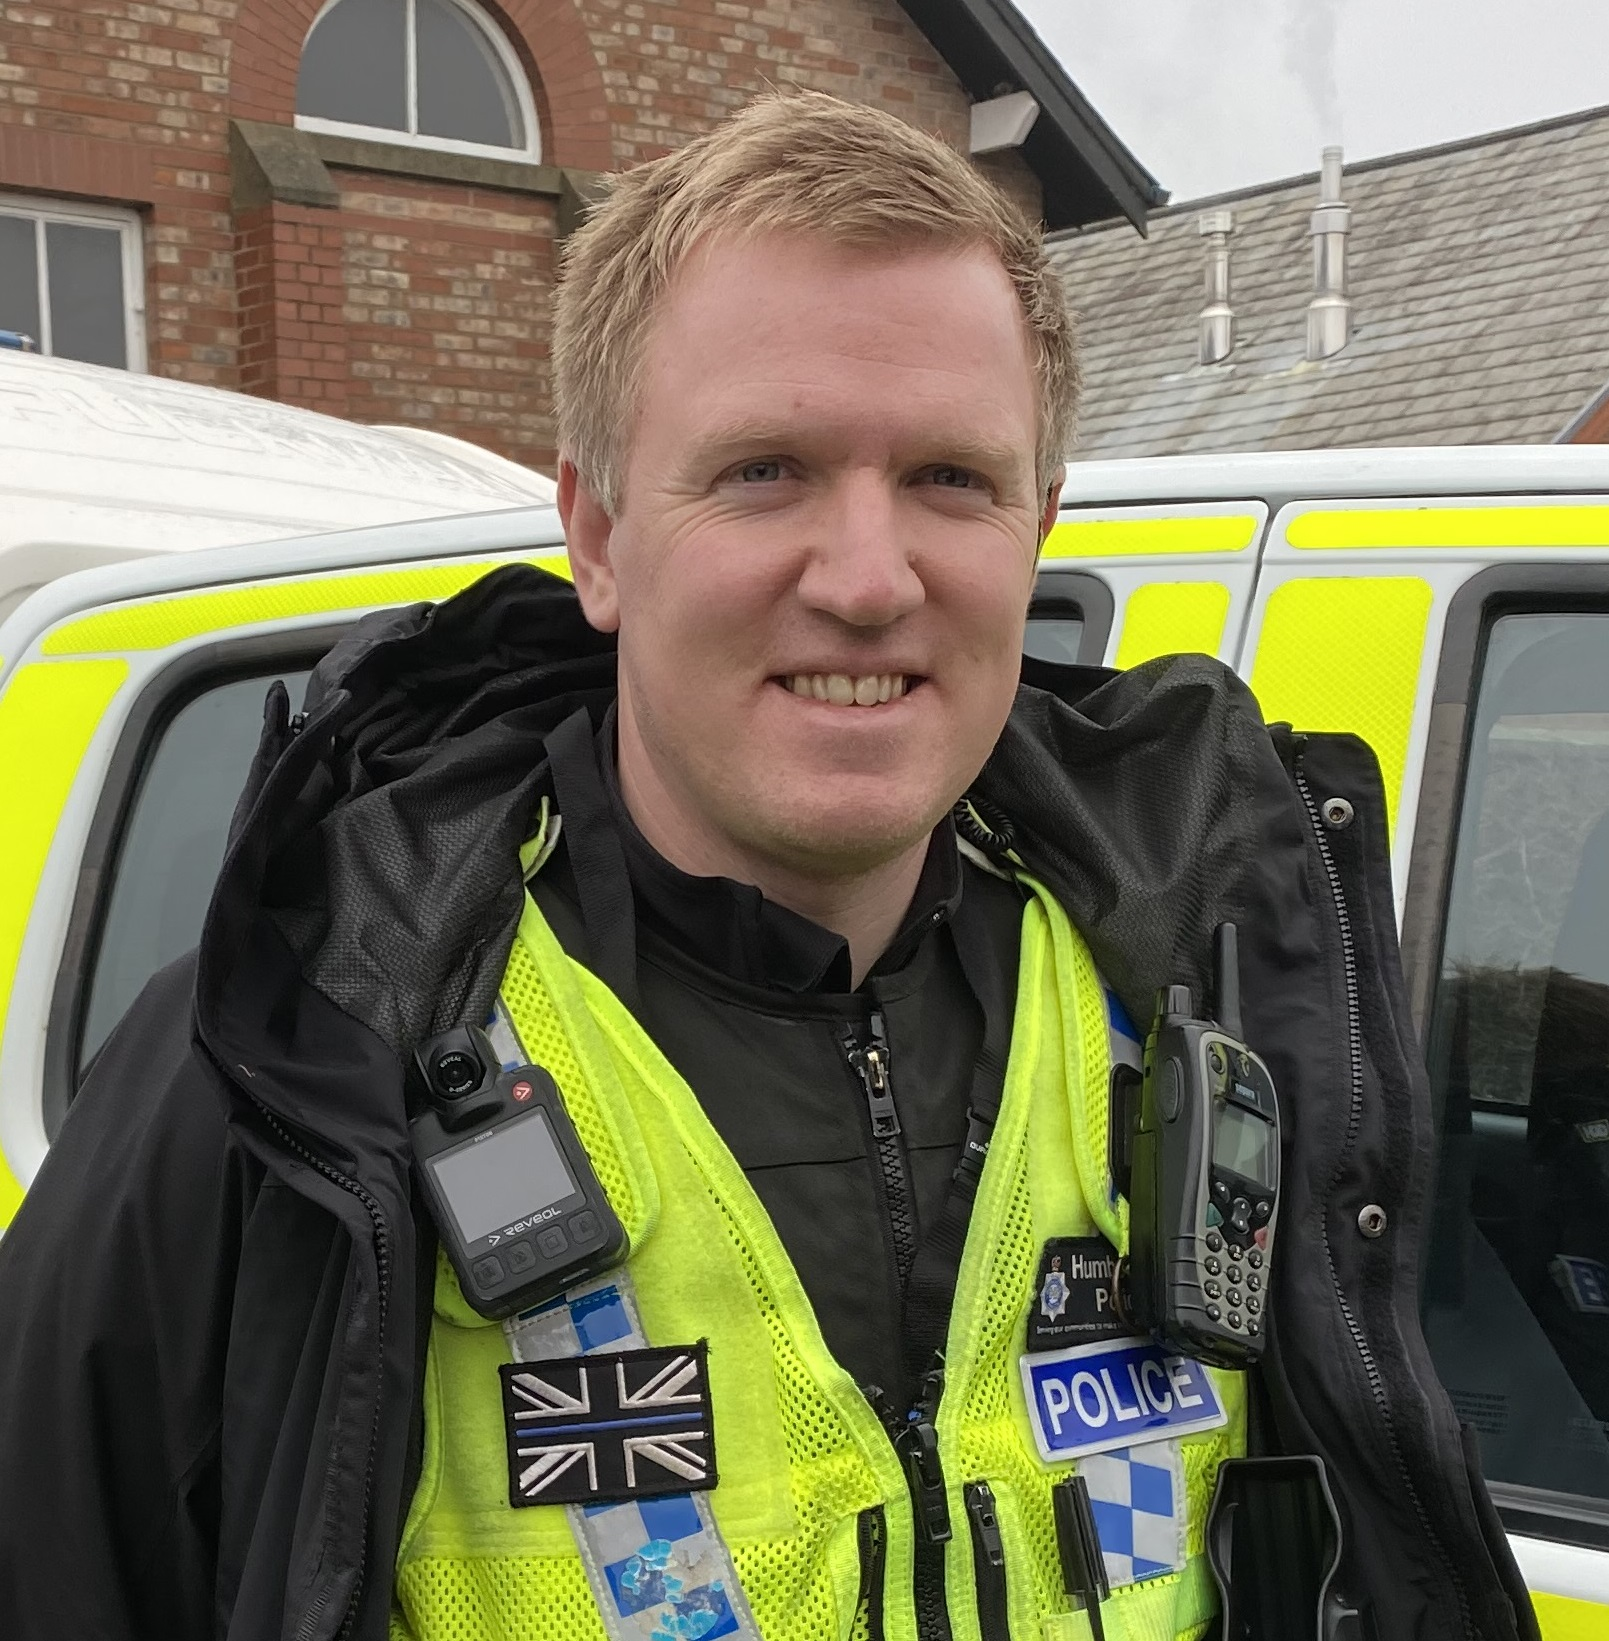 Police Constable Kevin Jones